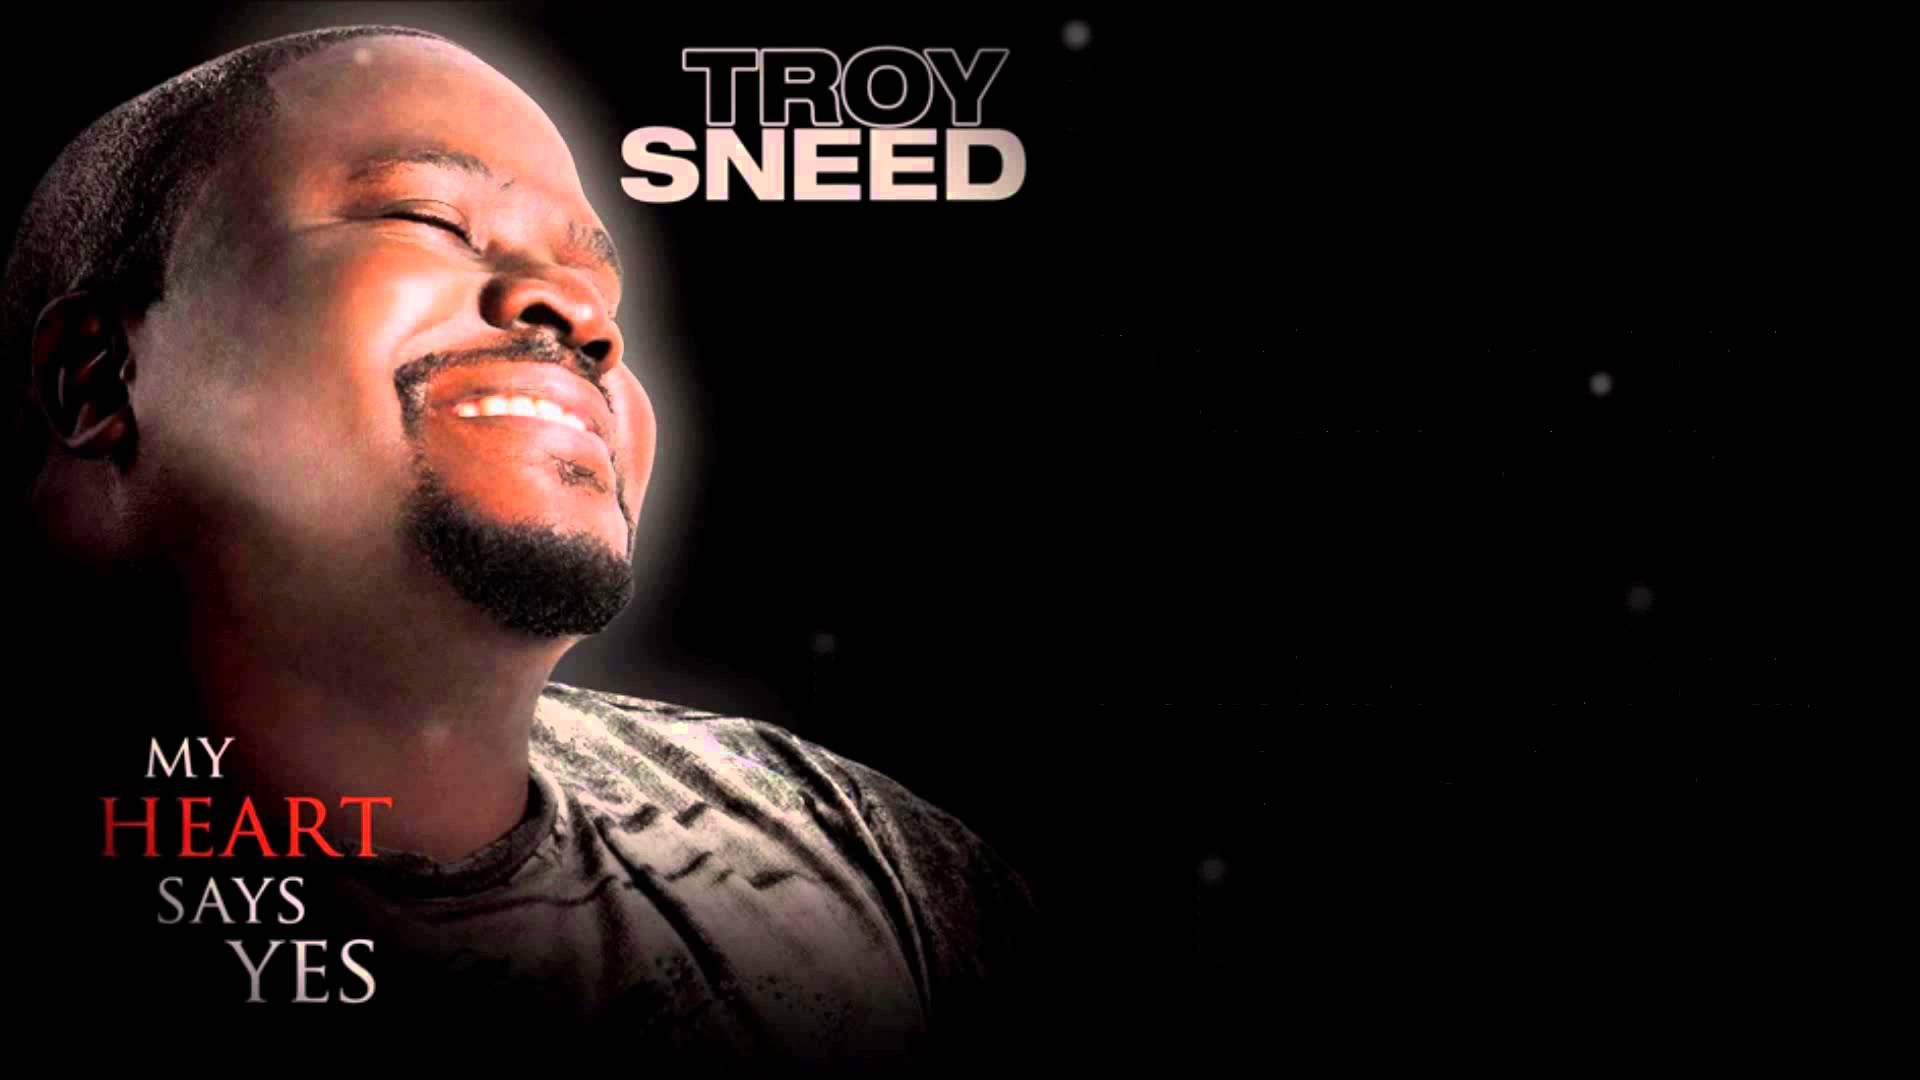 troy sneed i know you hear me mp3